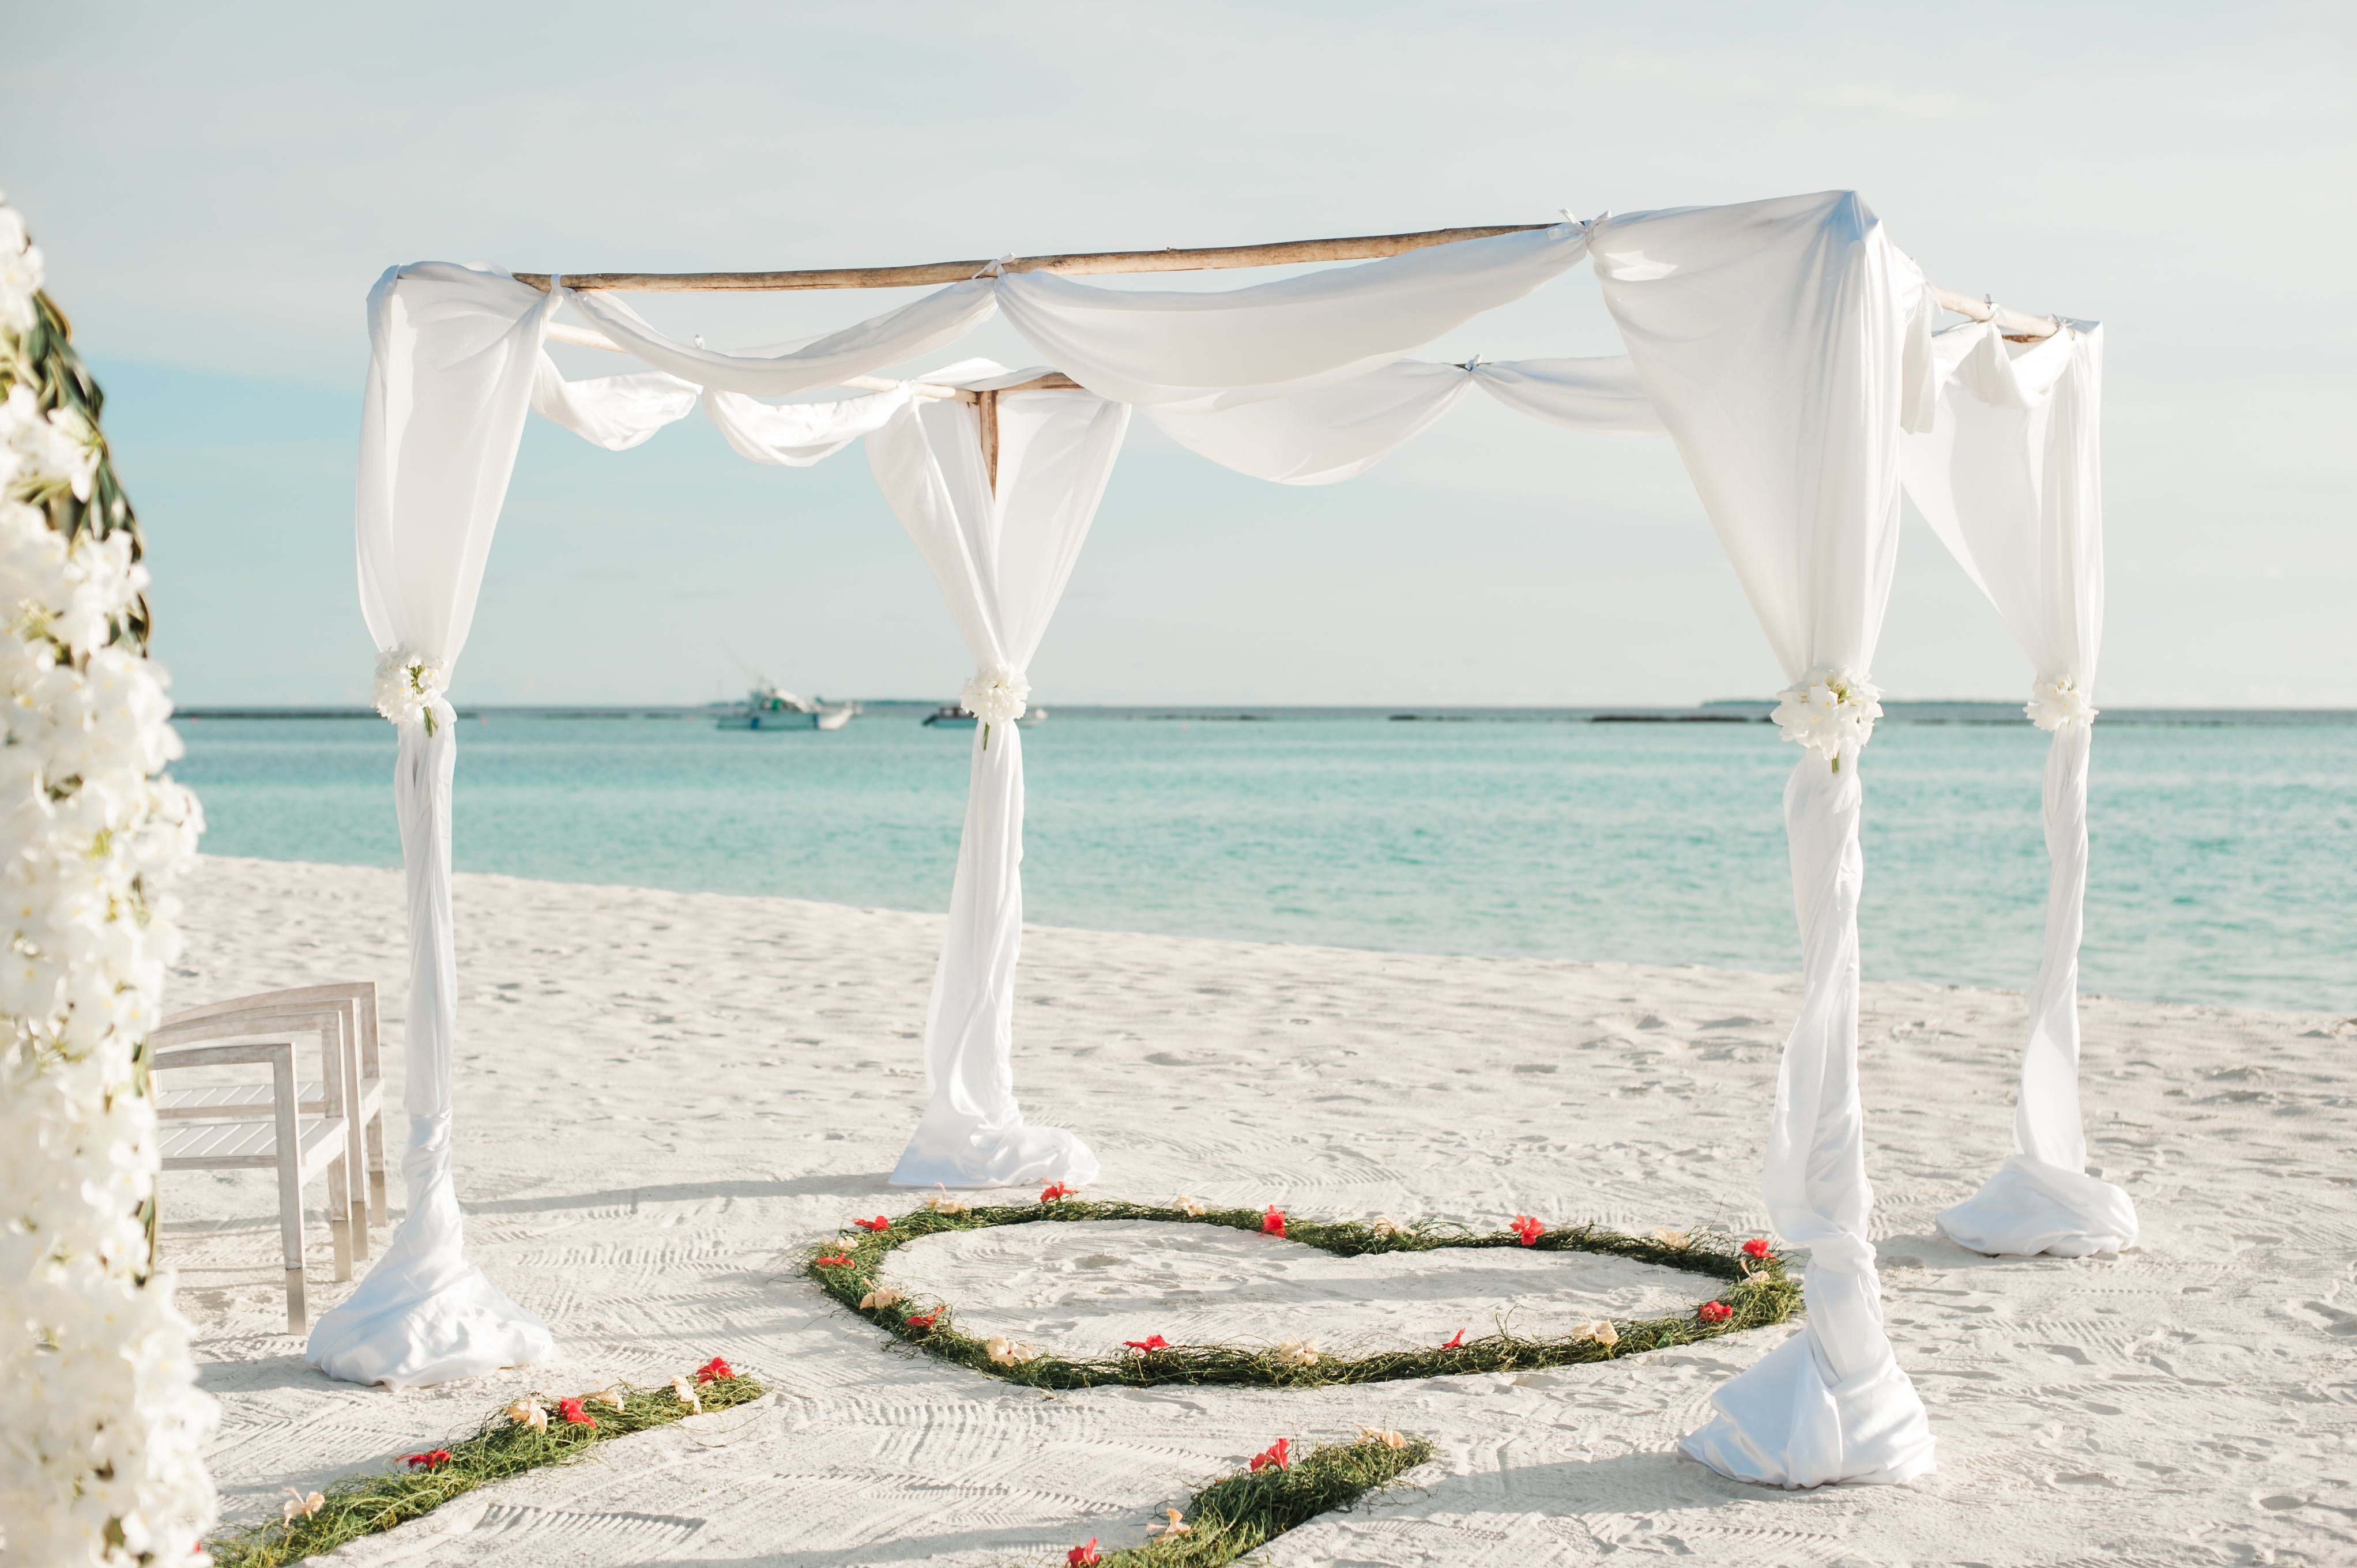 White Fabric Canopy Tent With Green Heart Floor Decor at Beach